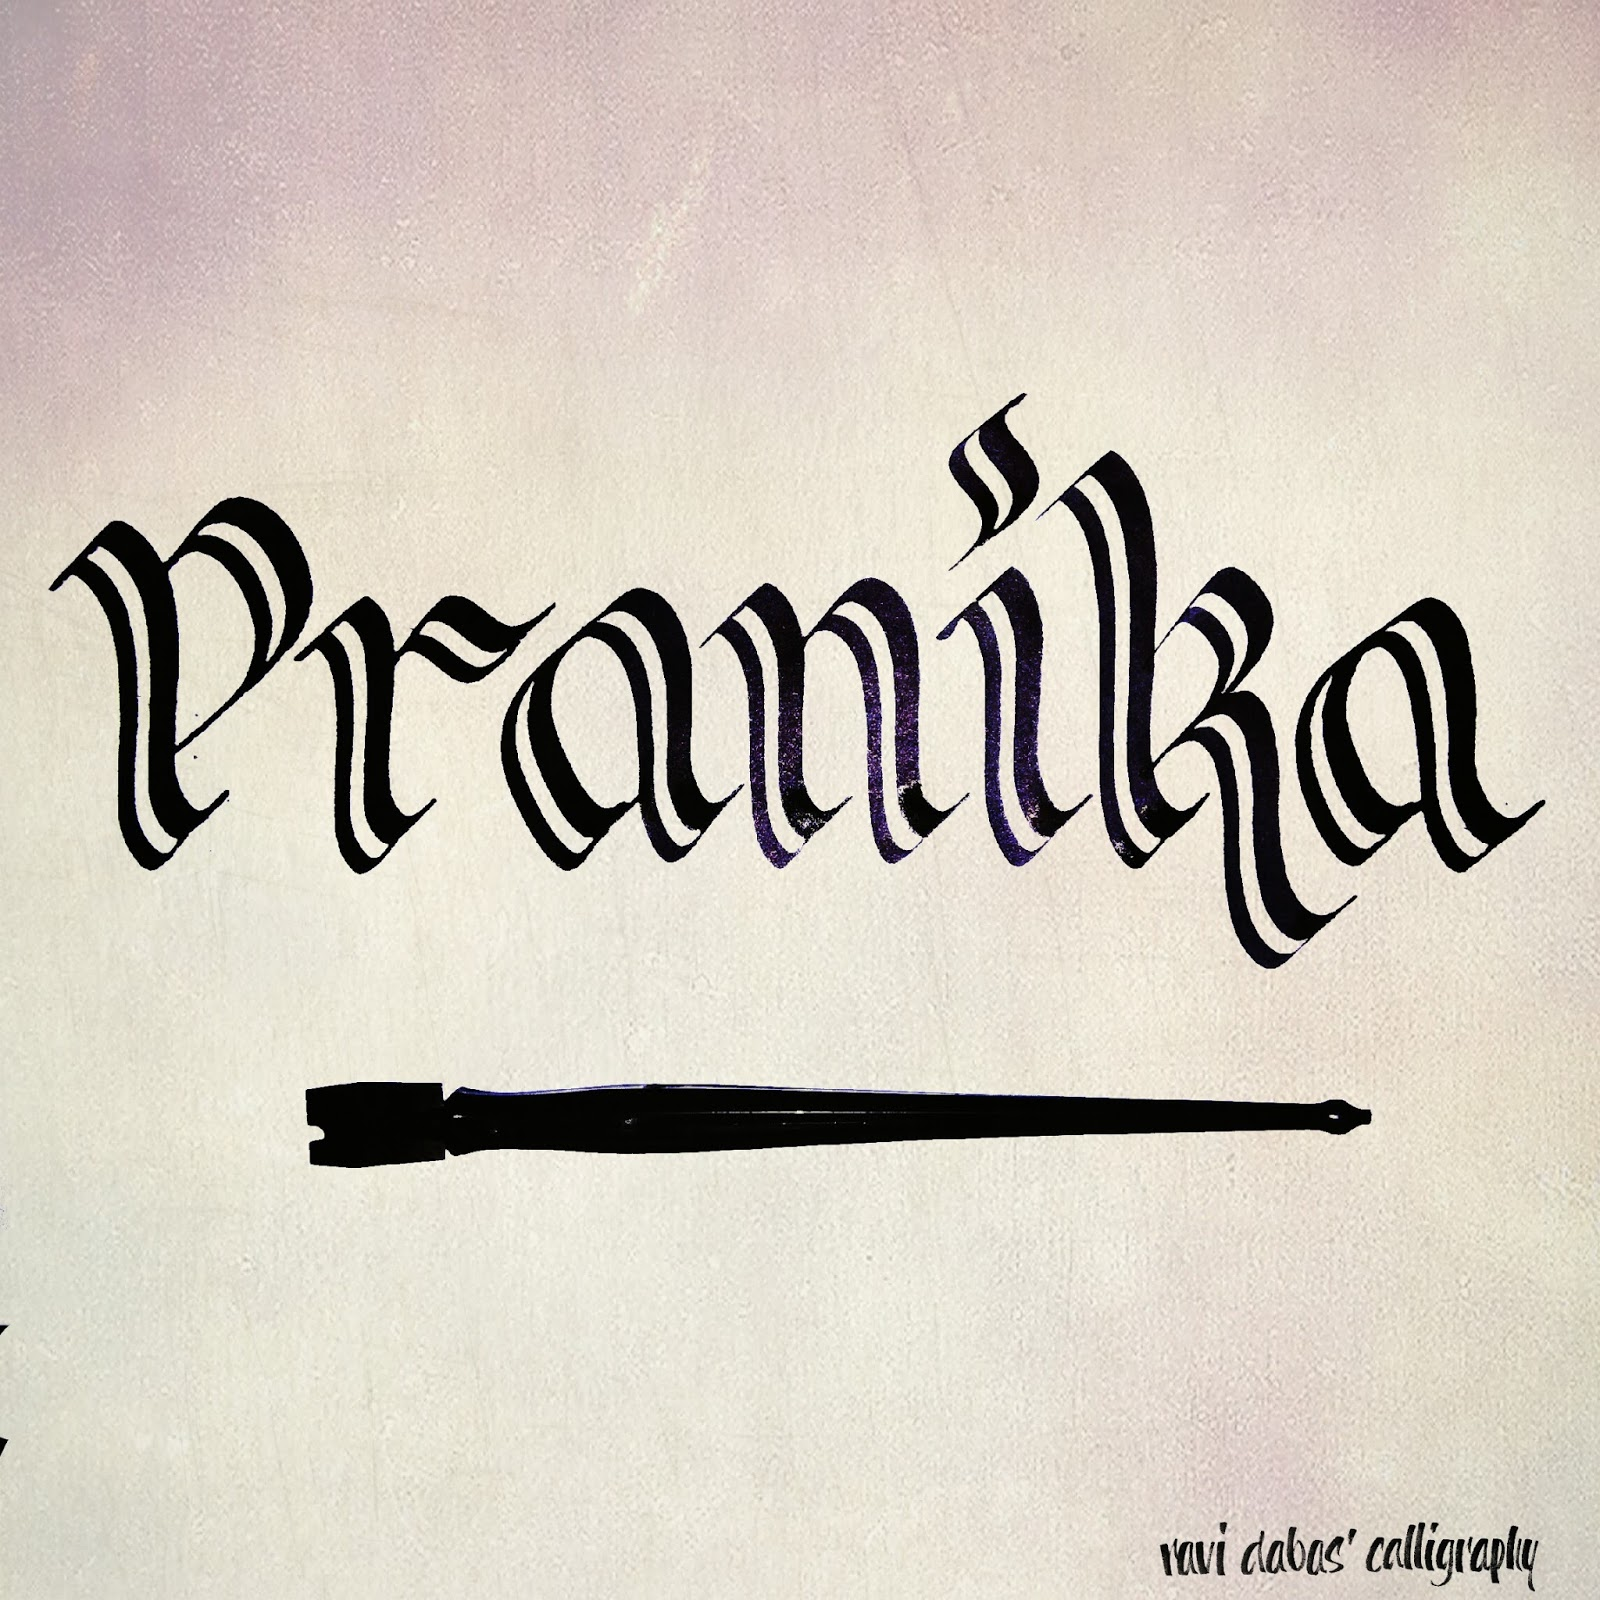 Welcome to my leisure pranika calligraphy pen